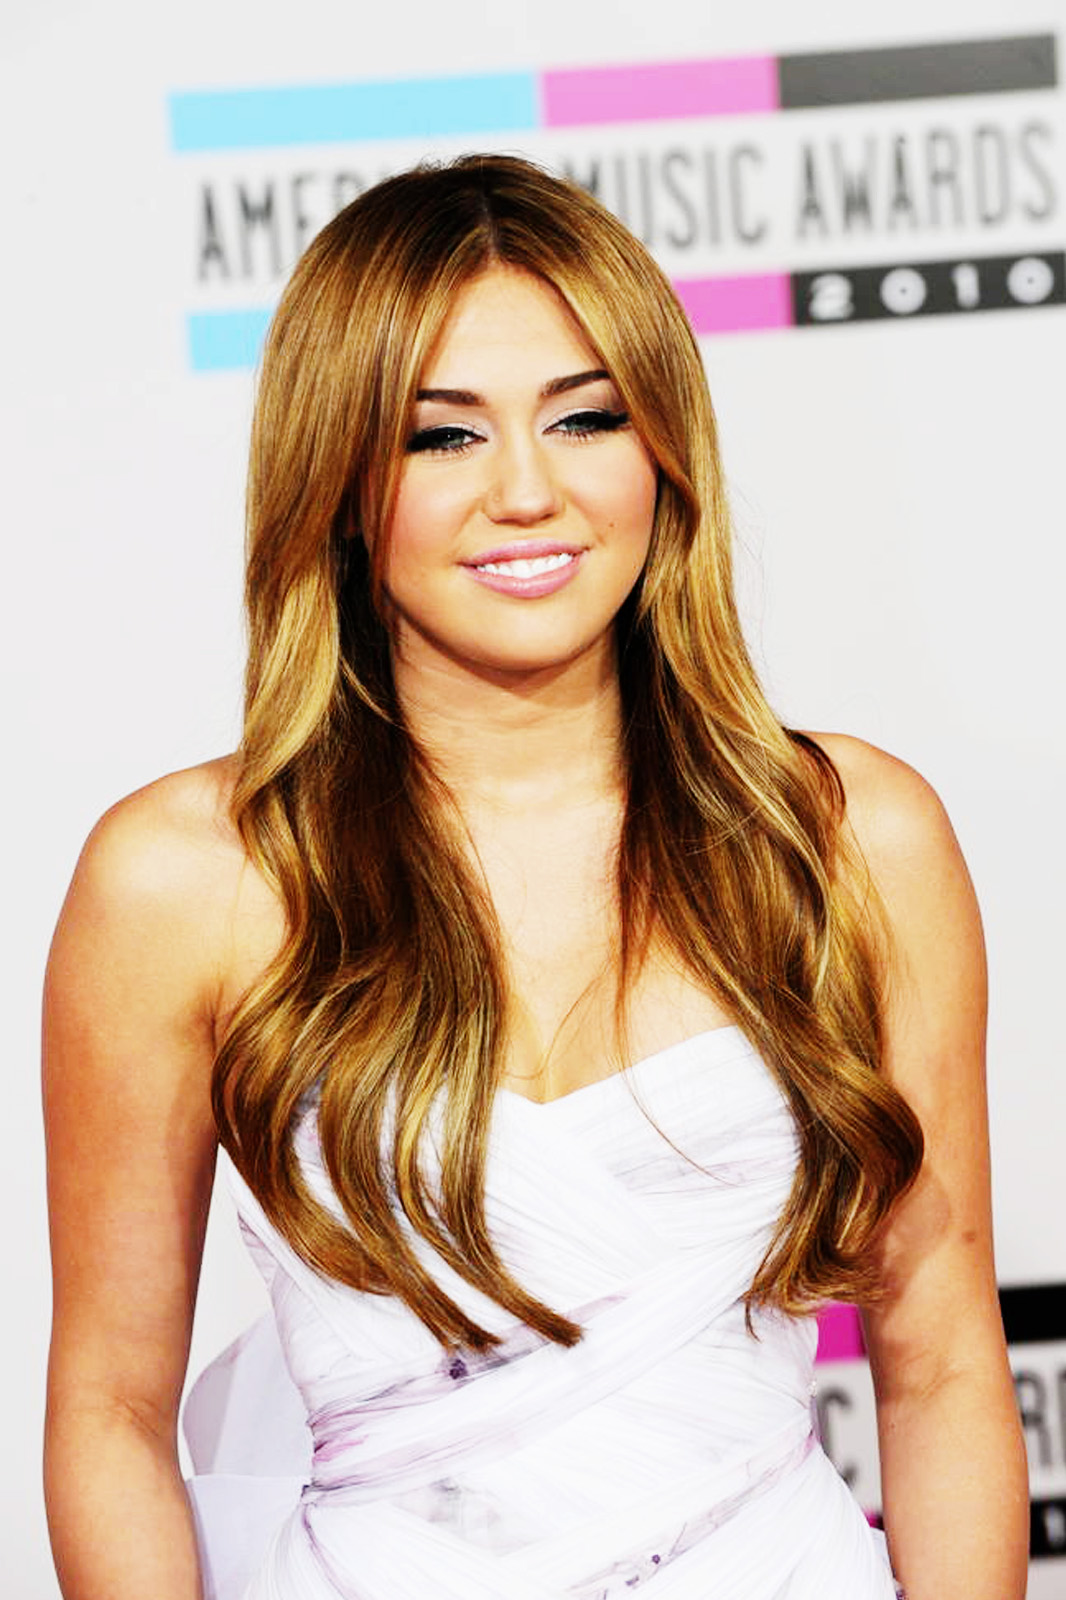 Miley Cyrus Hot Pictures  Miley Cyrus Wallpapers-9288